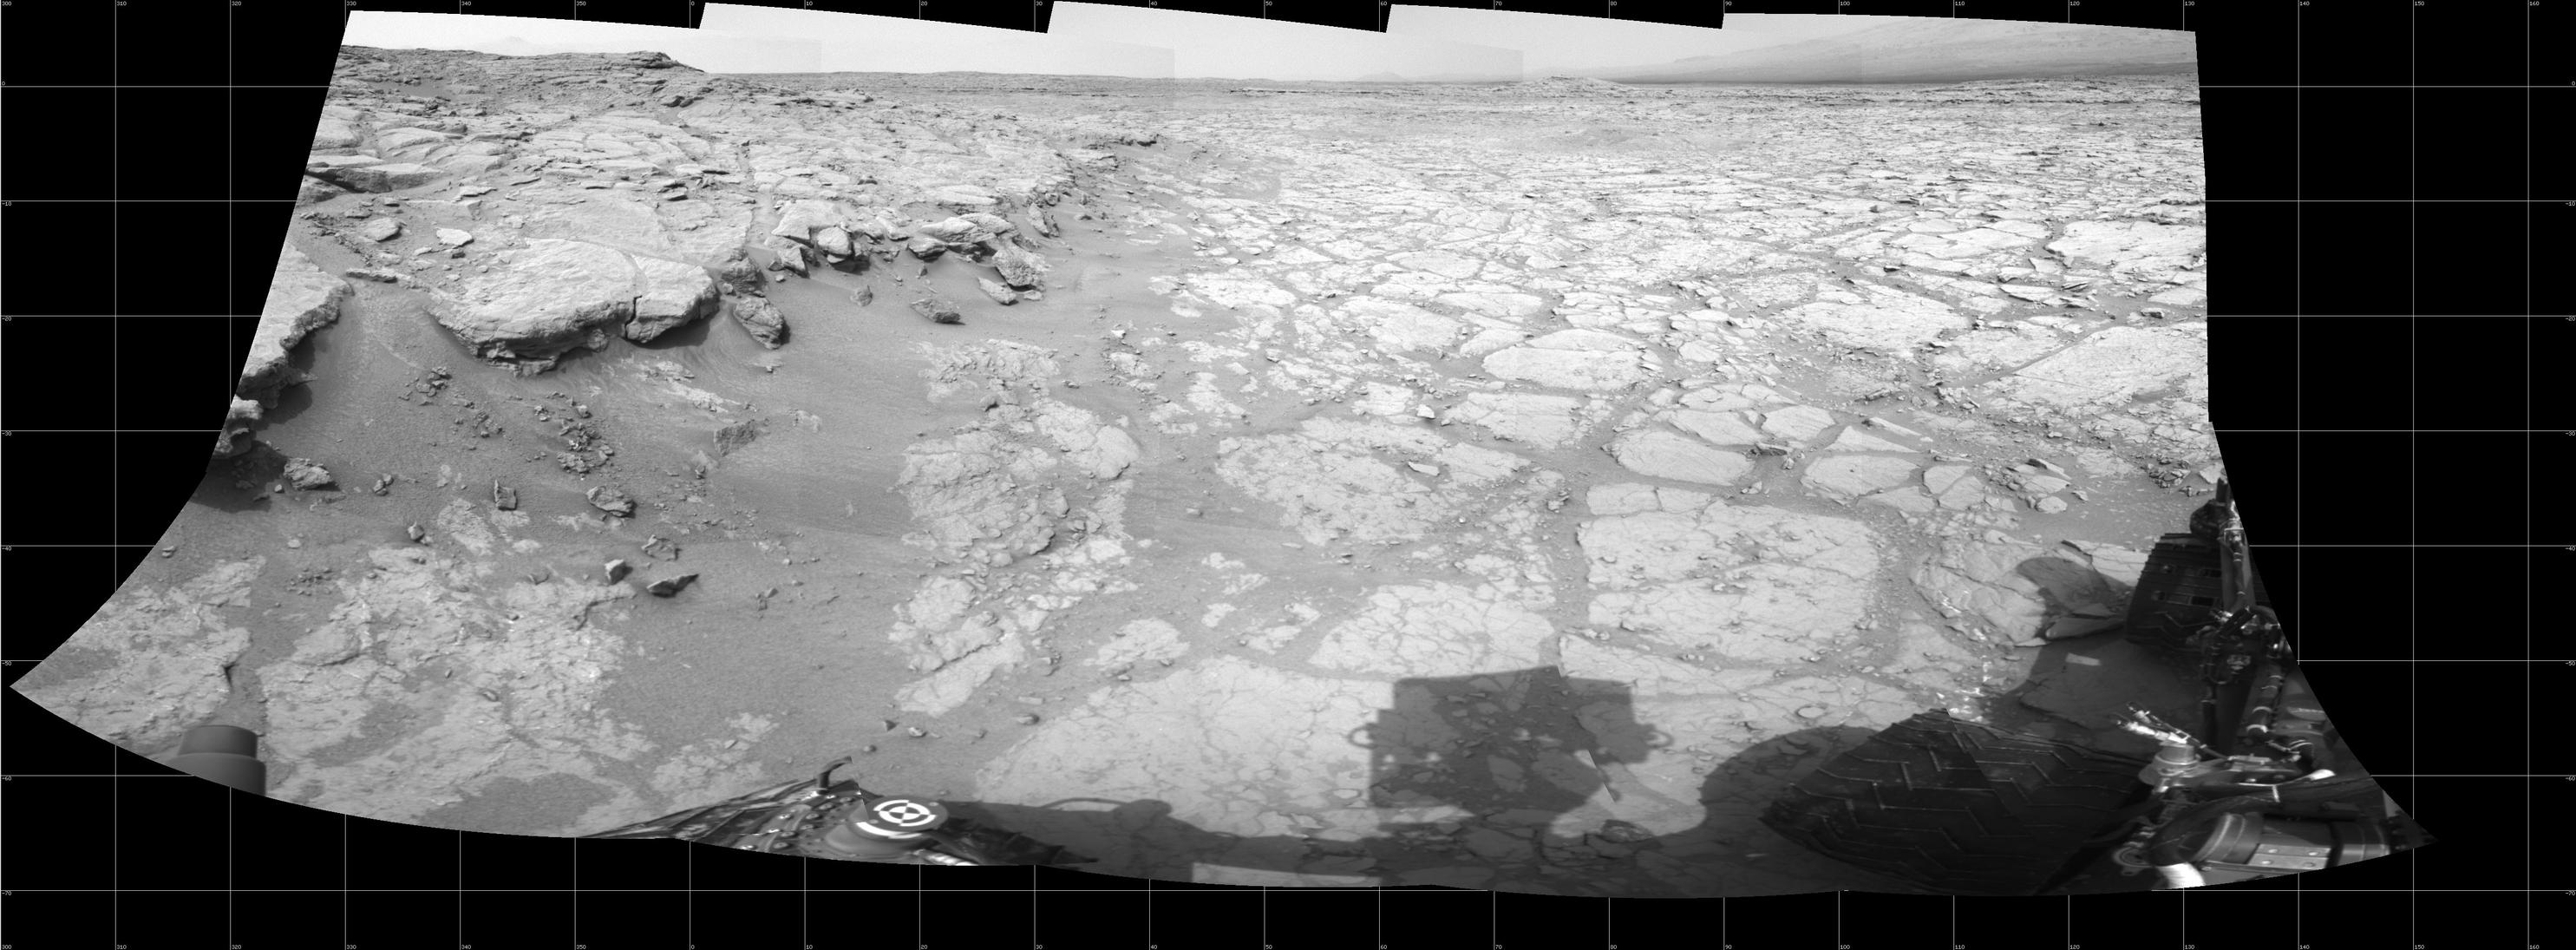 "In a shallow depression called ""Yellowknife Bay,"" the NASA Mars rover Curiosity drove to an edge of the feature during the 130th Martian day, or sol, of the mission (Dec. 17, 2012) and used its Navigation Camera to record this view of the ledge at the margin and a view across the ""bay."""